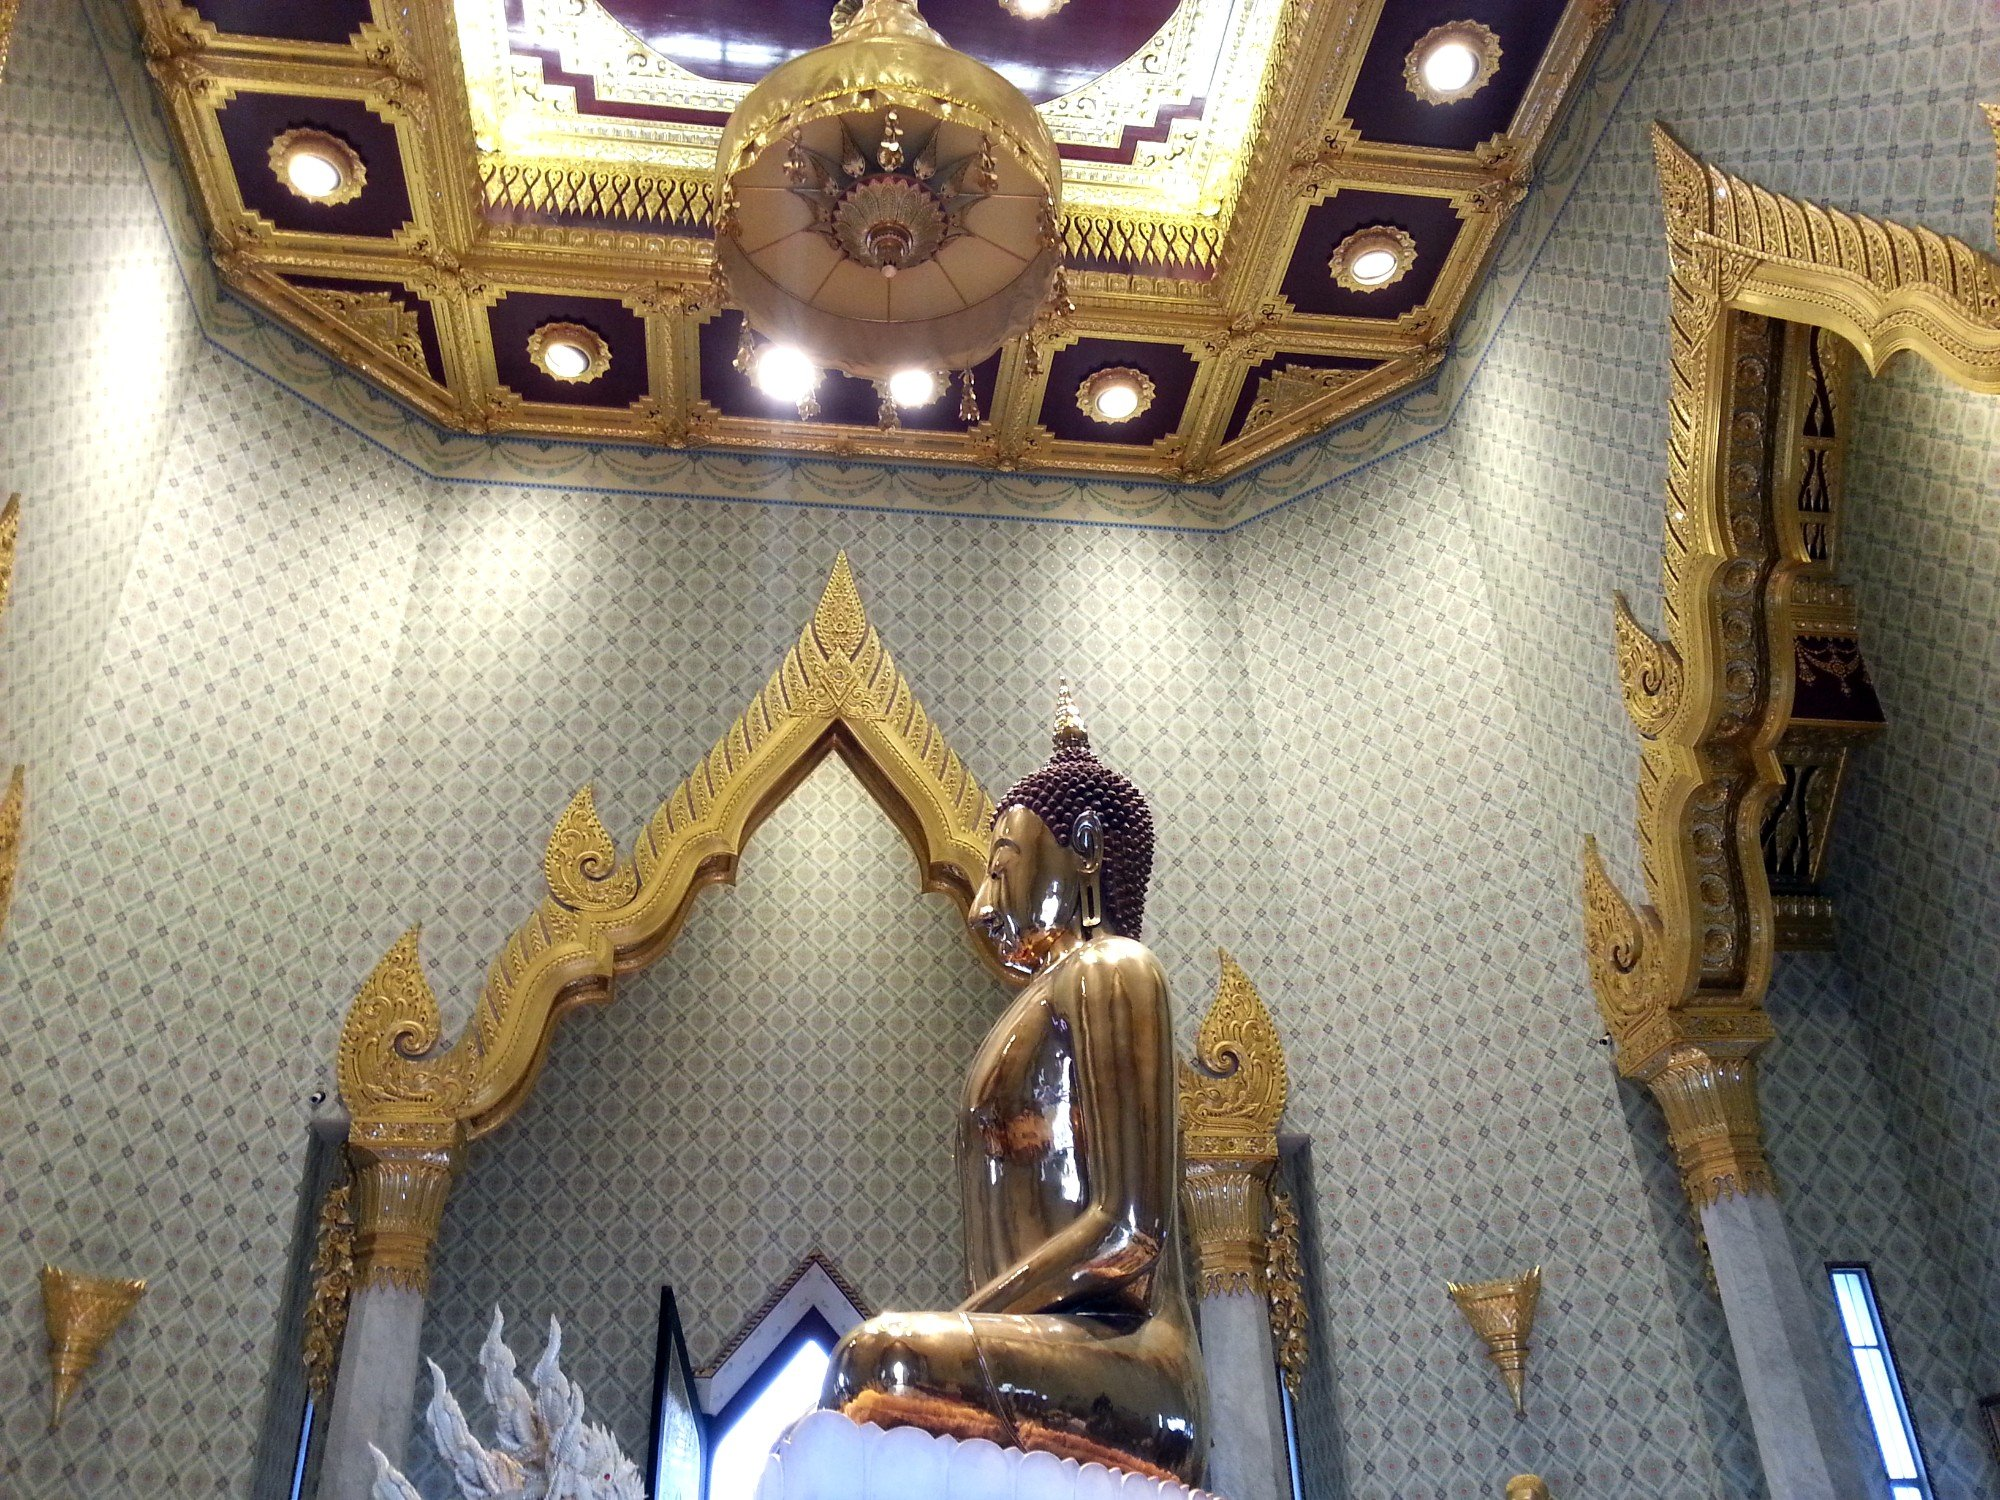 Side view of the Phra Phuttha Maha Suwan Patimakon at Wat Traimit